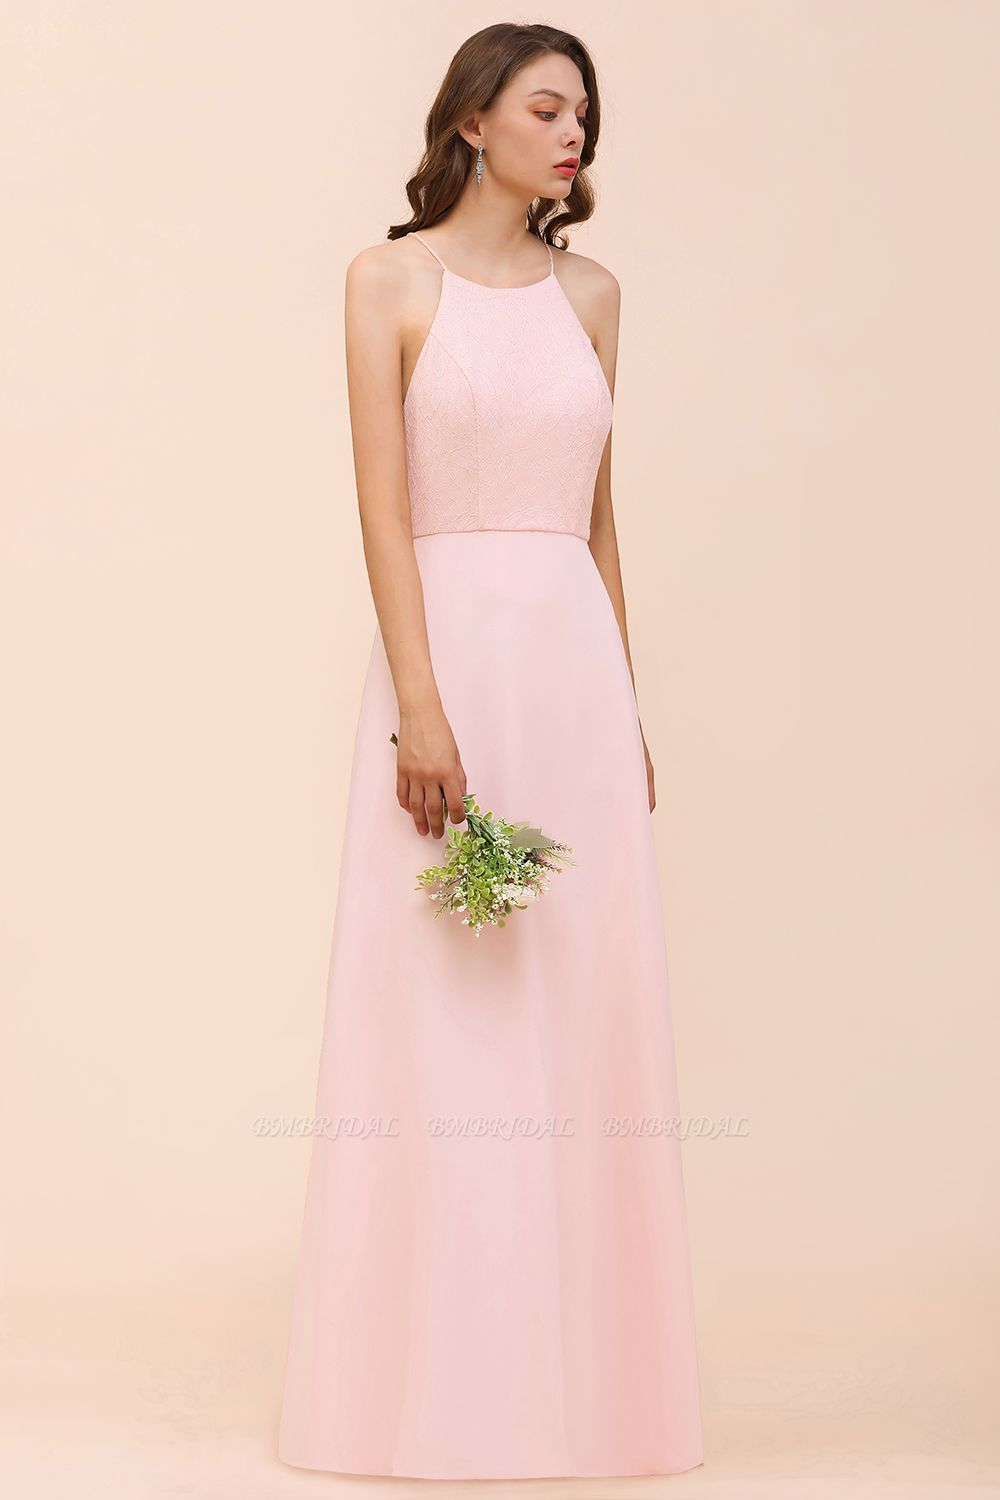 https://www.bmbridal.com/elegant-lace-spaghetti-straps-affordable-long-bridesmaid-dress-g601?cate_1=4?utm_source=blog&utm_medium=Lyosha&utm_campaign=post&source=Lyosha